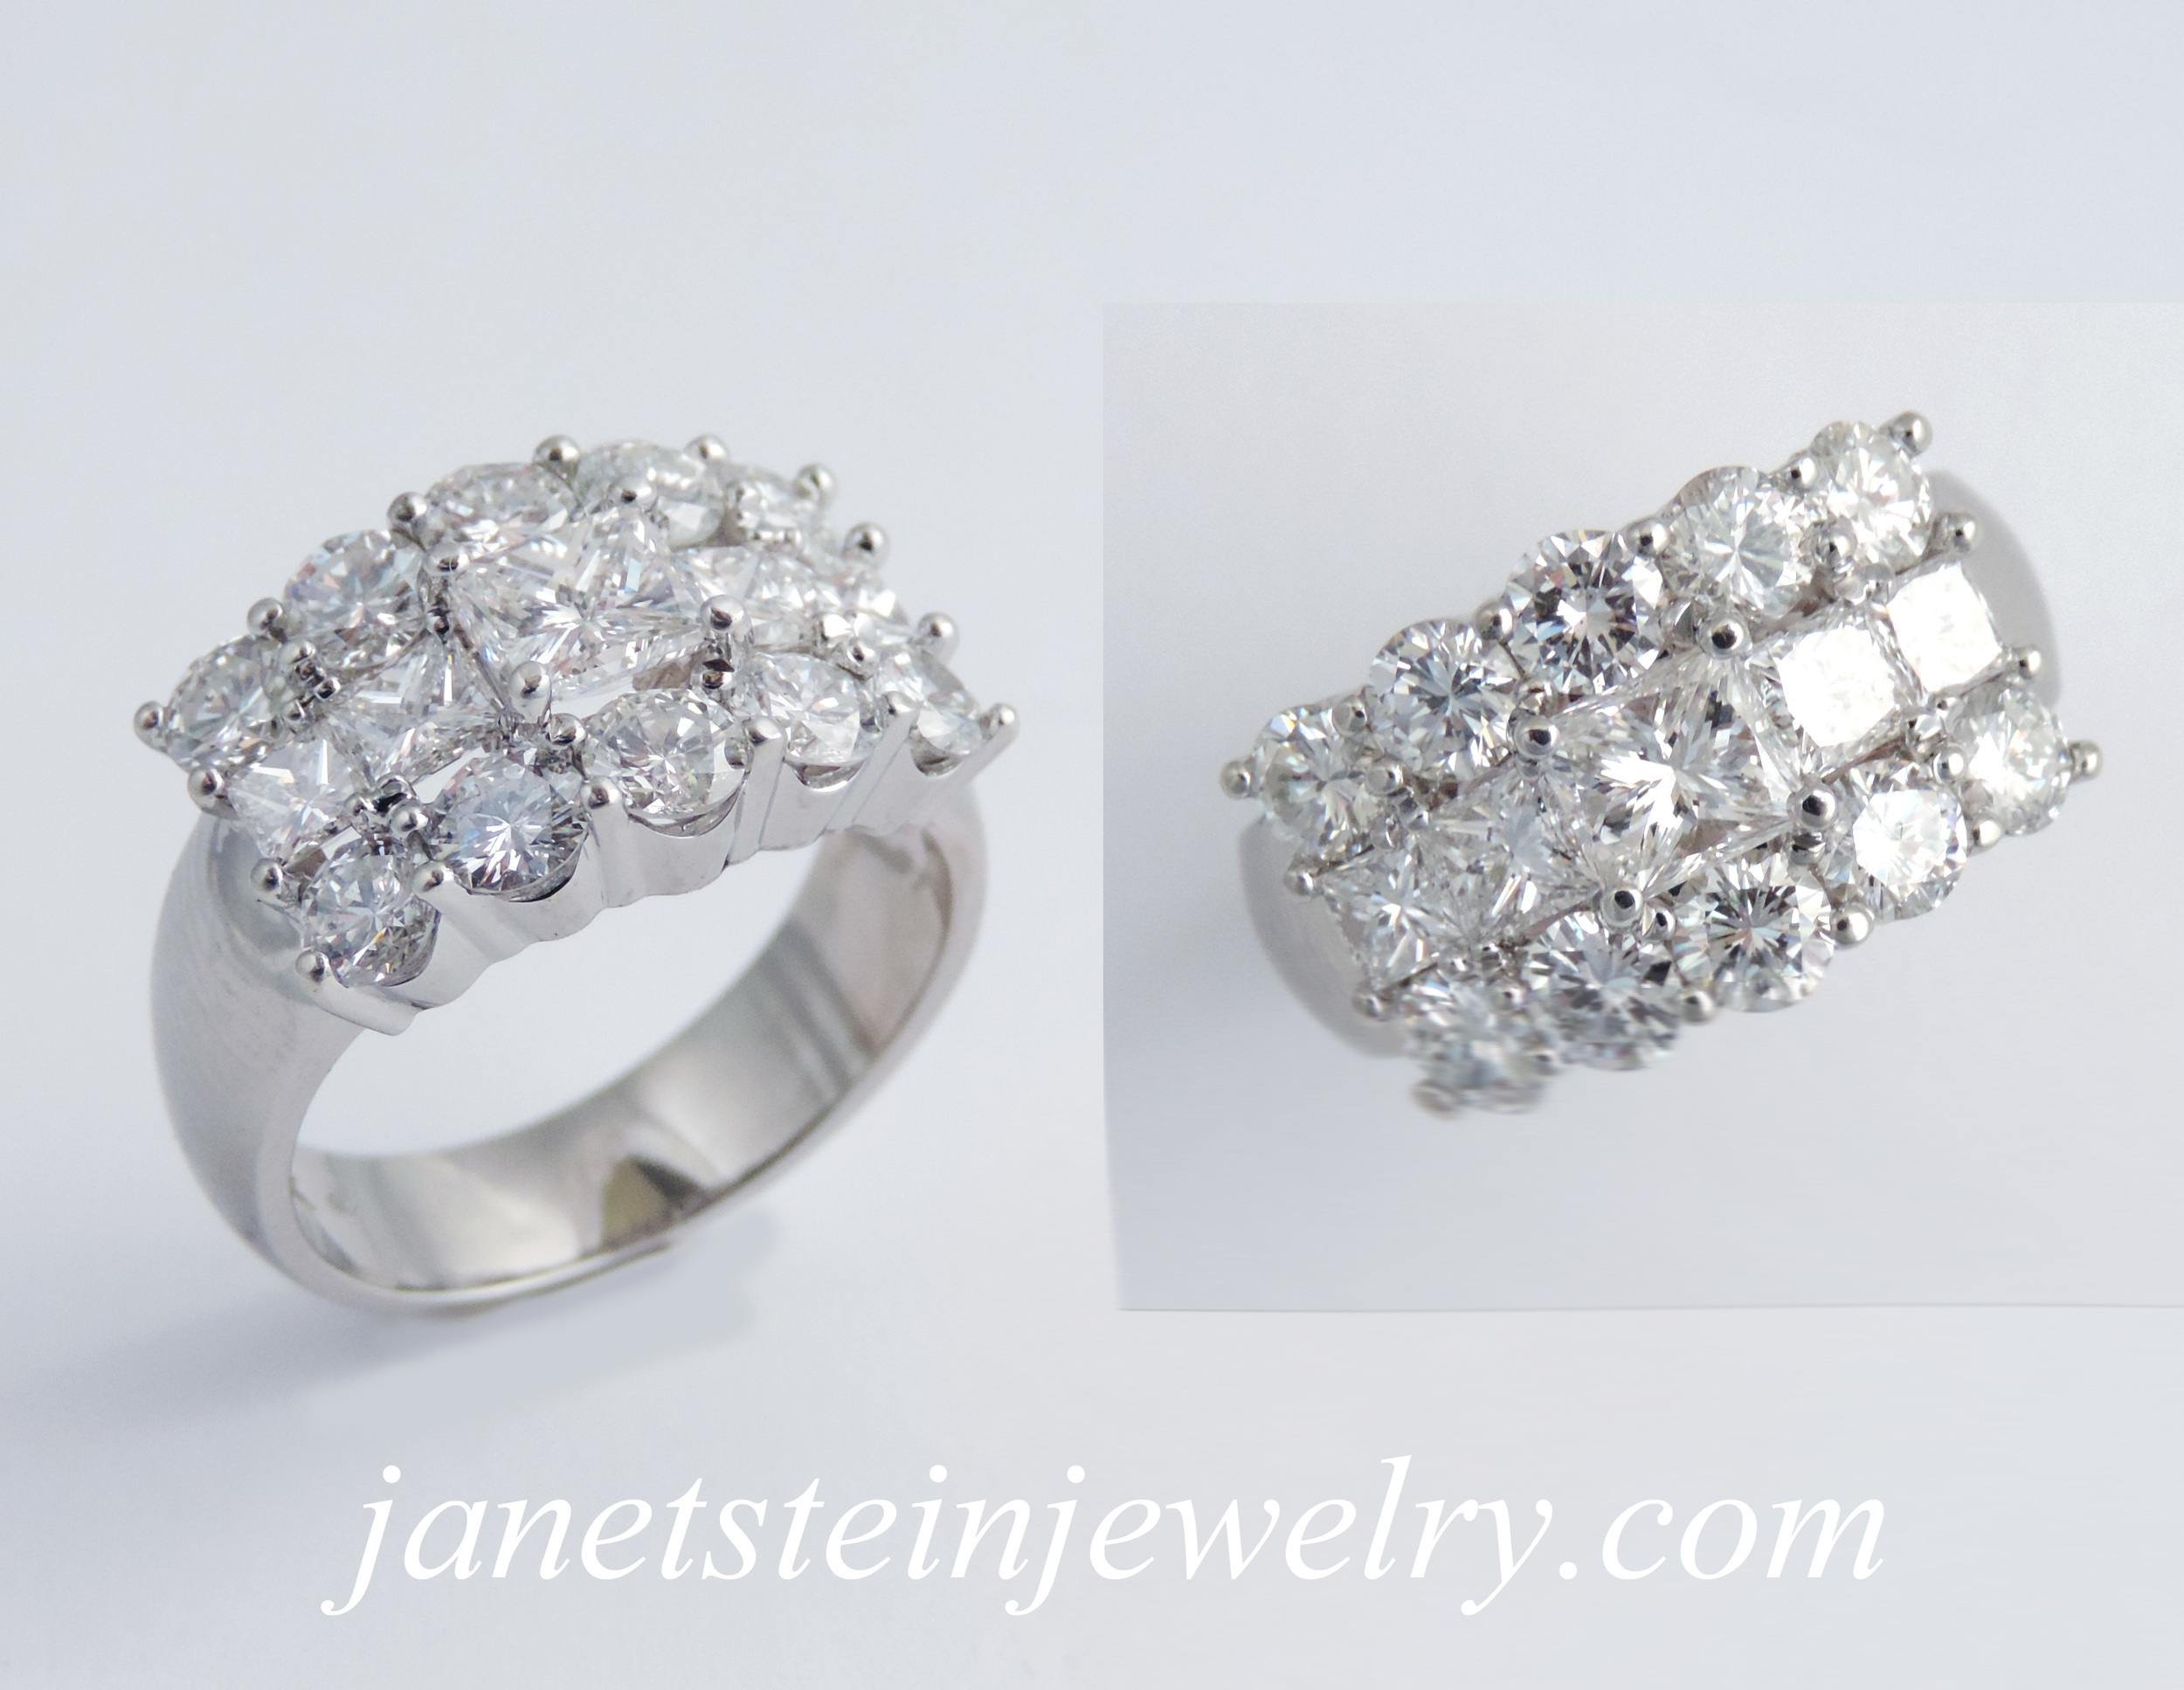 18k white gold and diamonds, approx 3 carat total weight